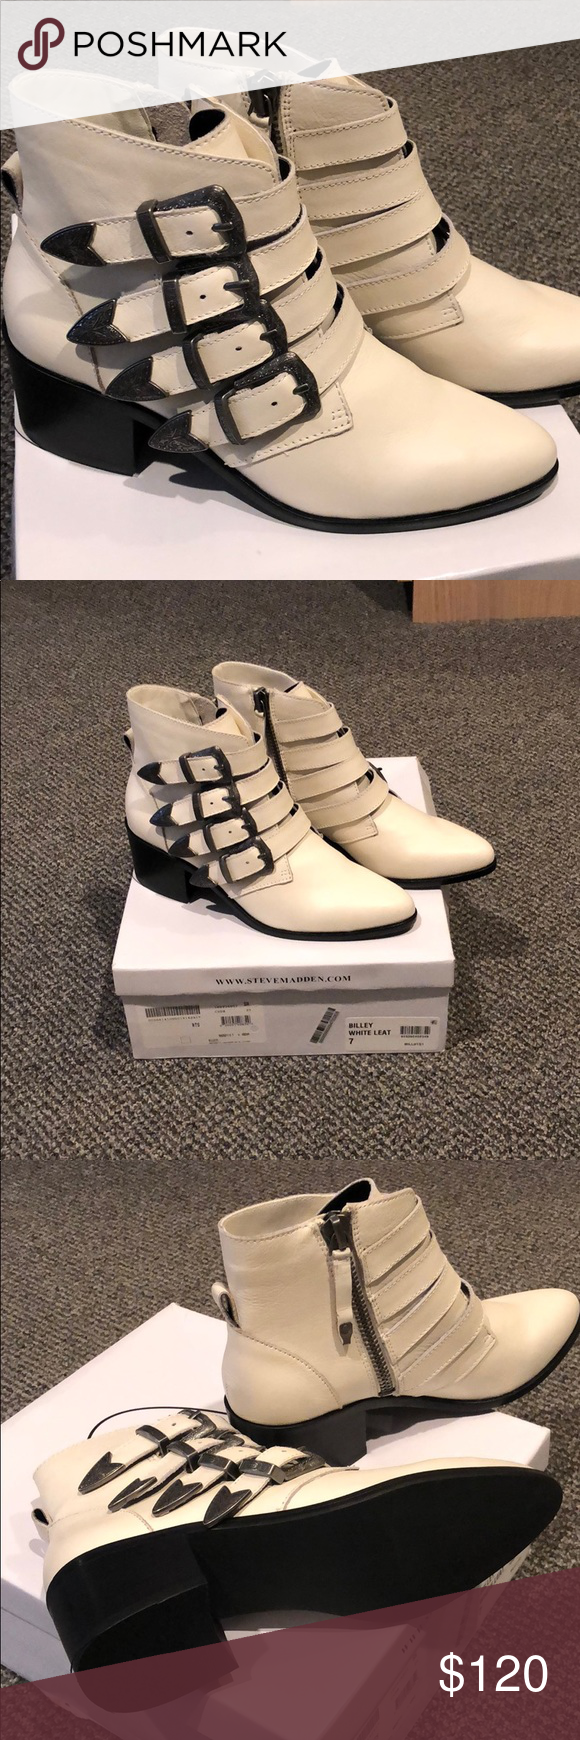 ef205da7fbb Brand New Steve Madden Billey Ankle Bootie Off White leather booties with  four buckle detail! Perfect for western trend yet timeless! Never worn.